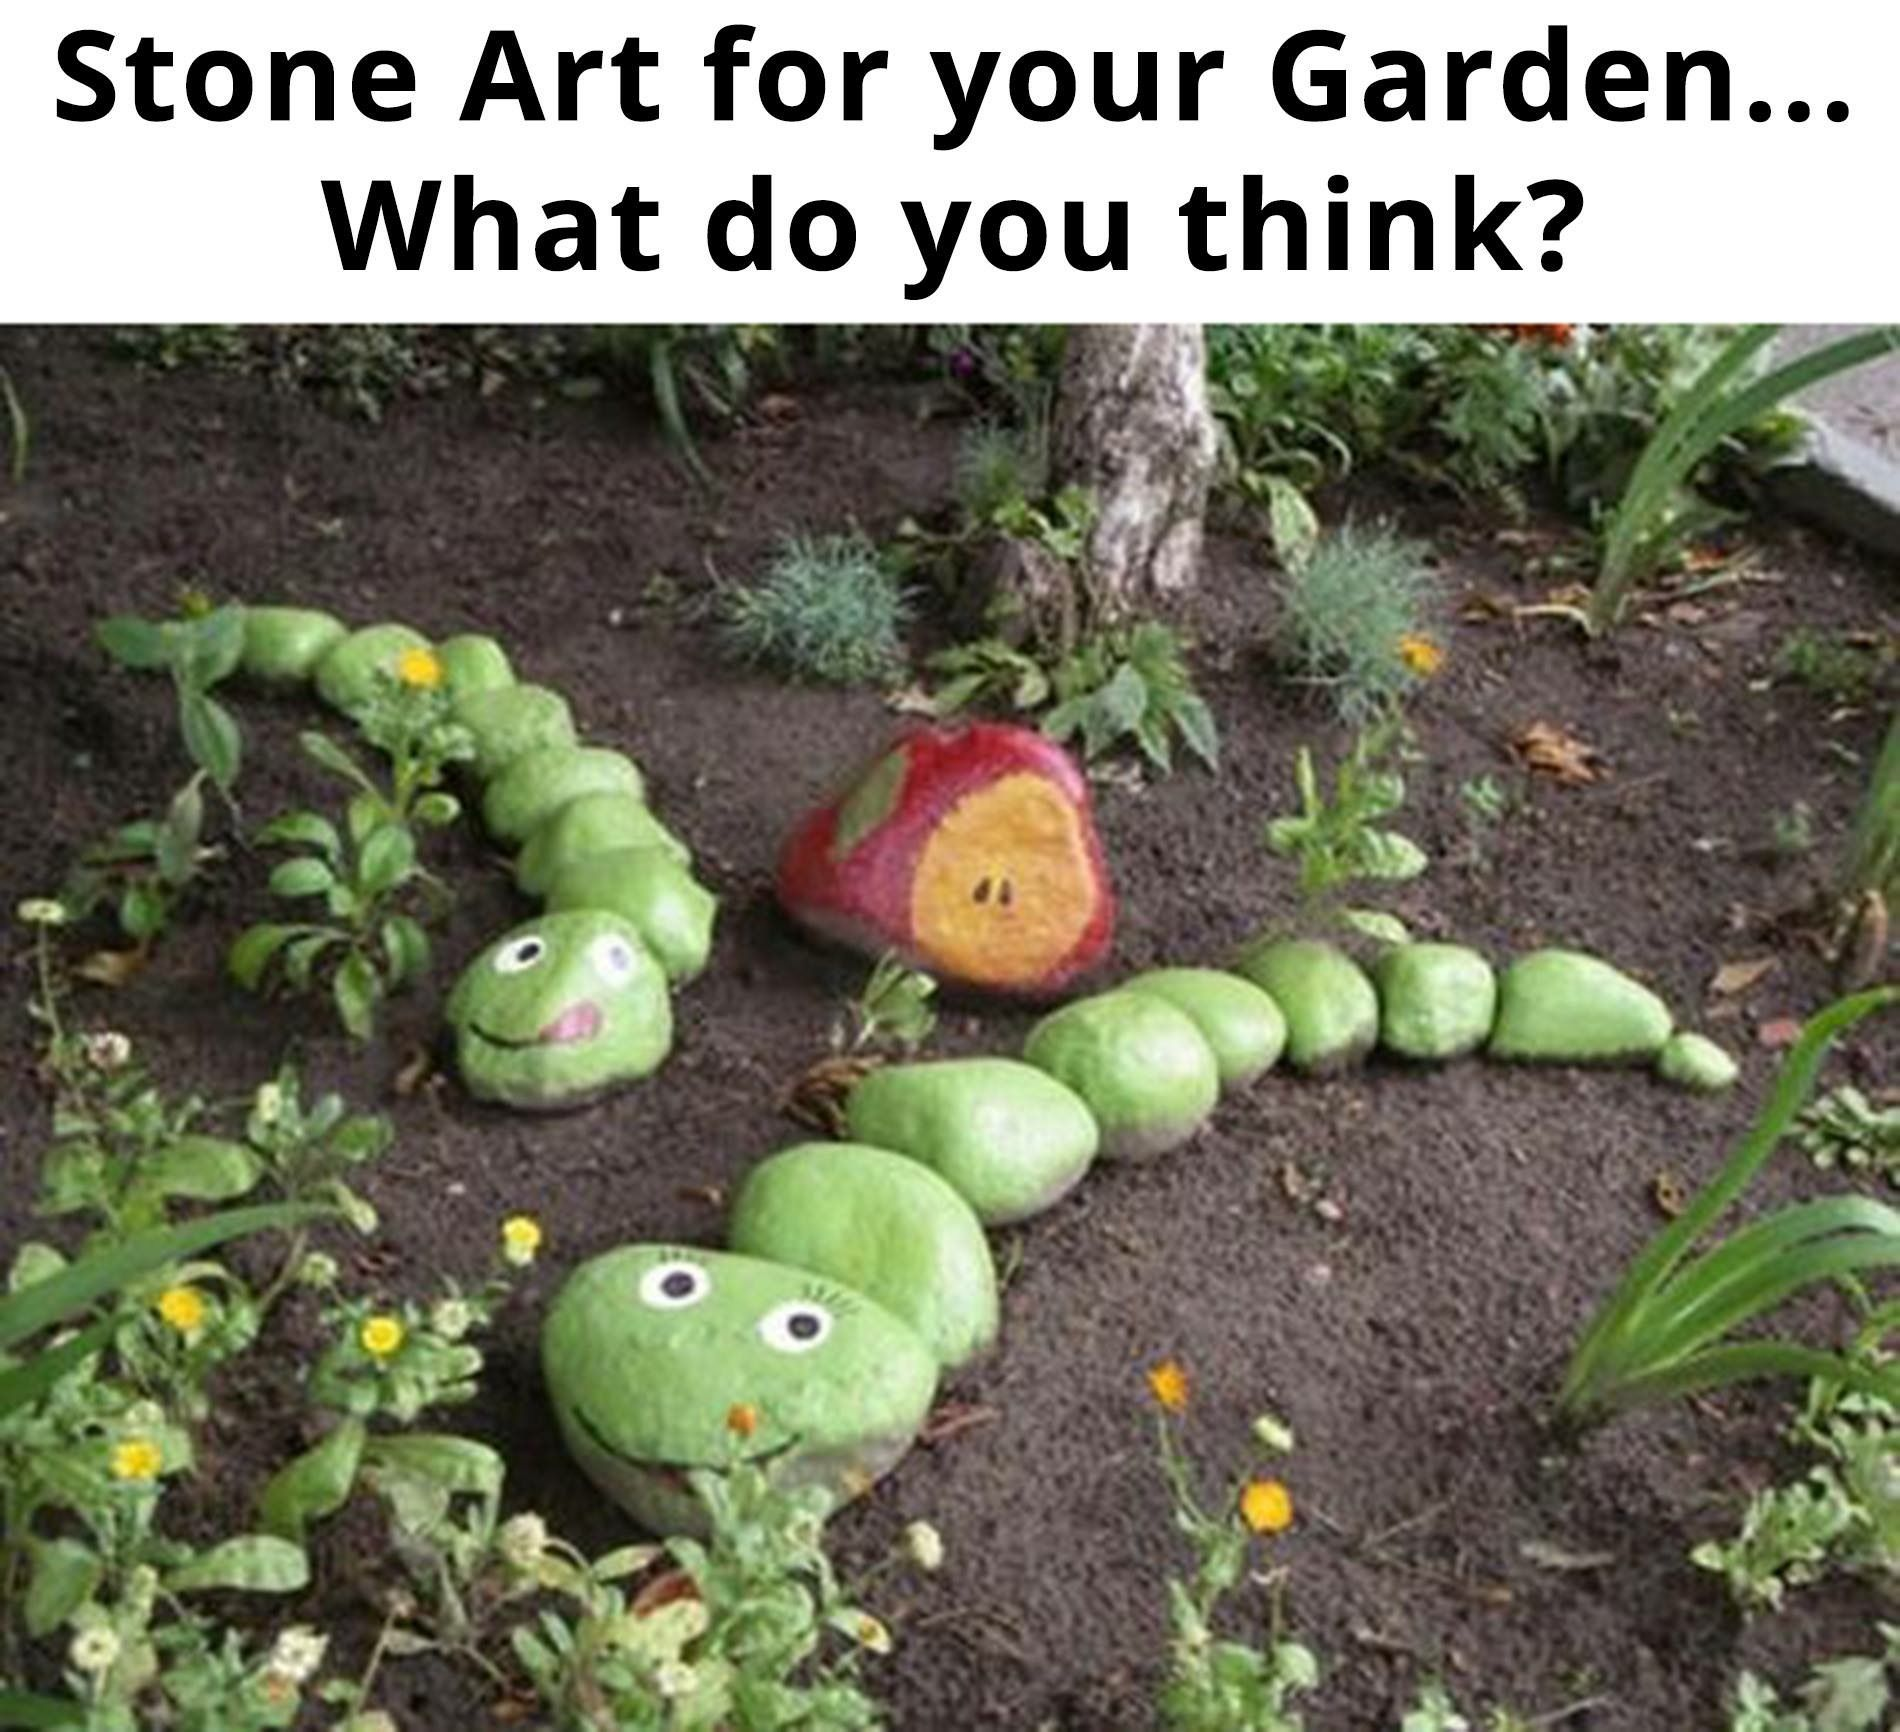 Como Decorar Un Jardin Con Piedras Paint Stones Green And Make Very Hungry Caterpillars For Your